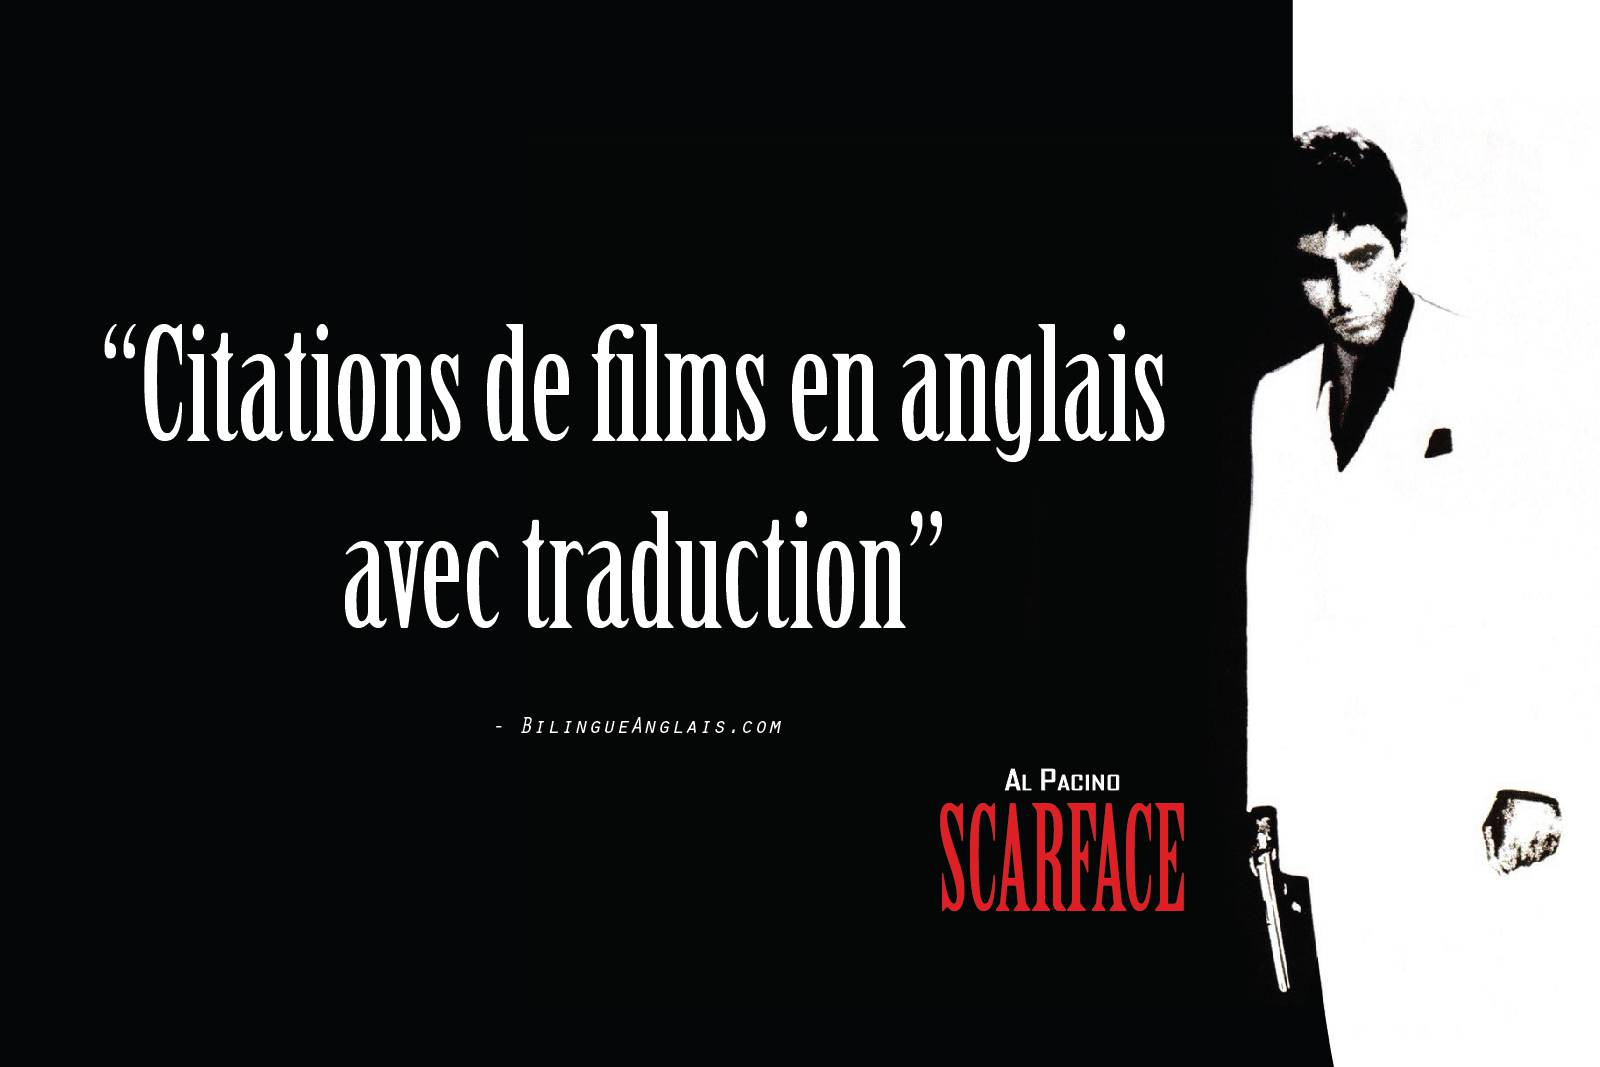 Citations de films en anglais avec traduction · Phrases cultes en